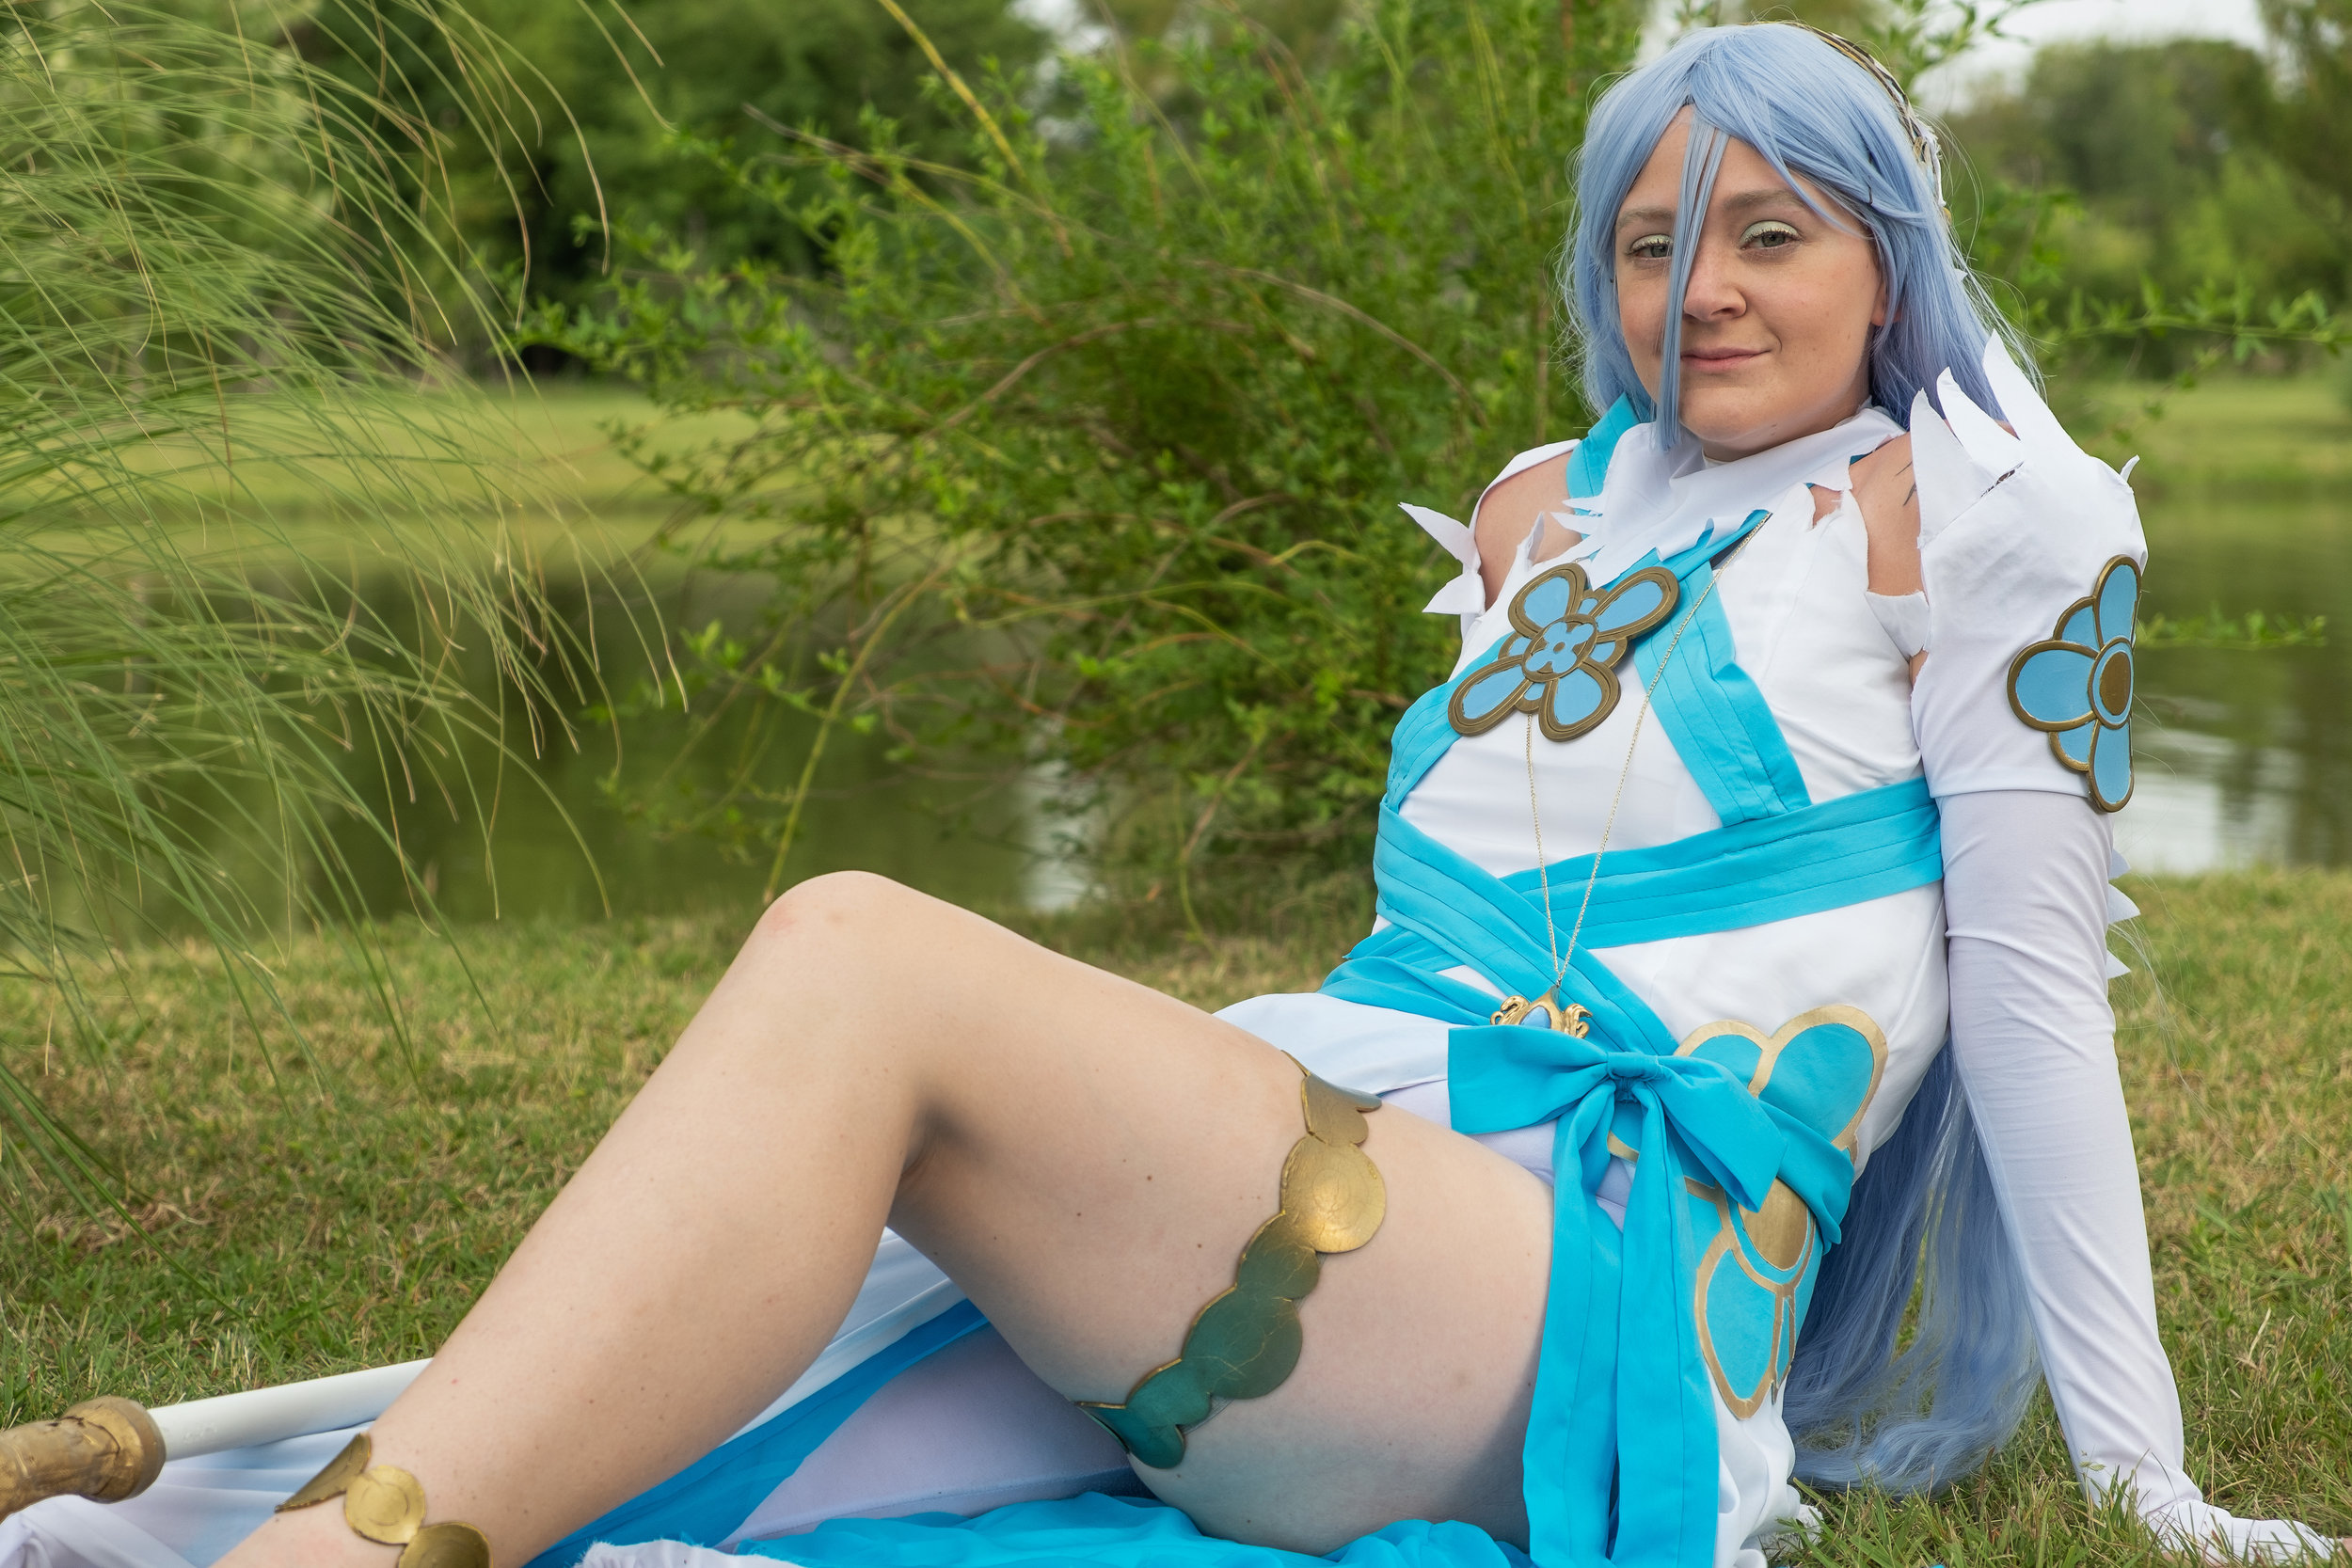 Allybelle cosplaying as Azura from Fire Emblem: Fates